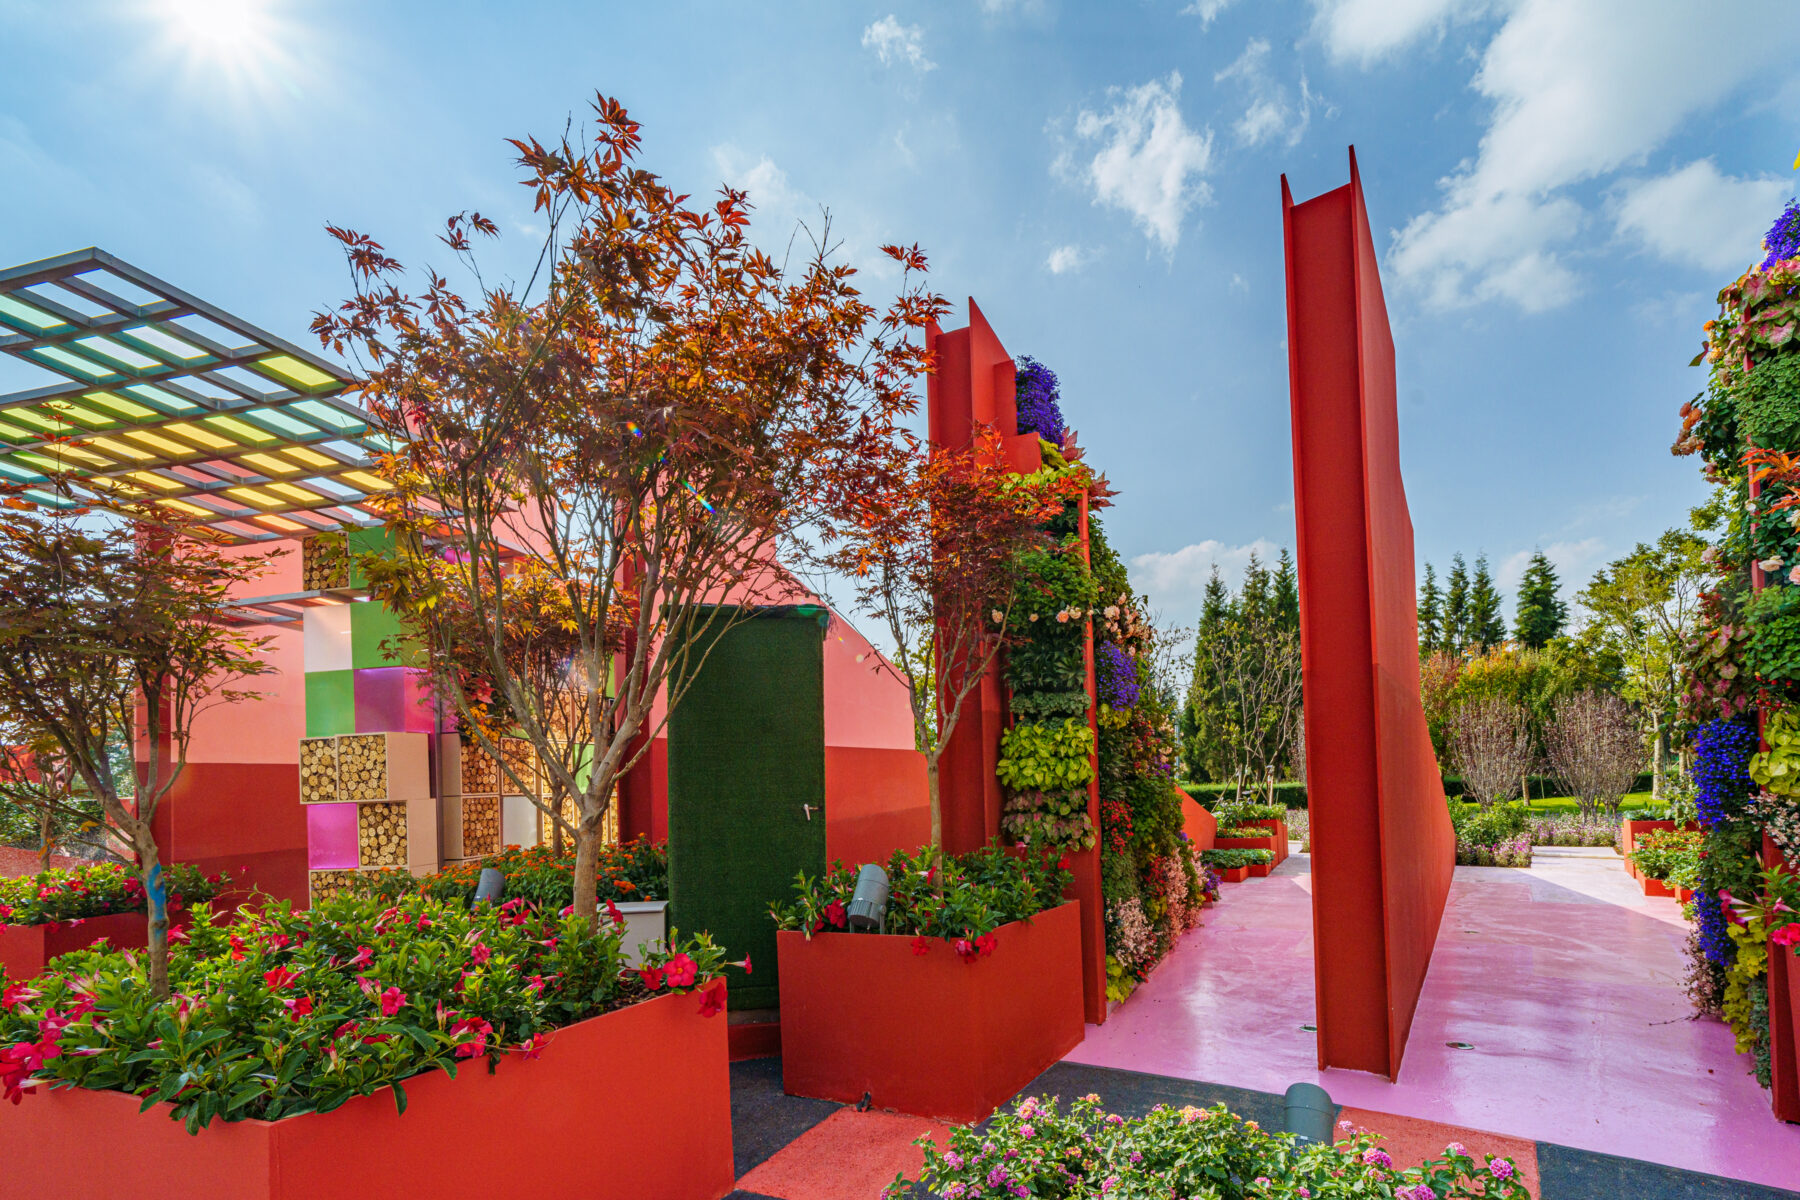 Chetwoods Future City Garden : Nature and City